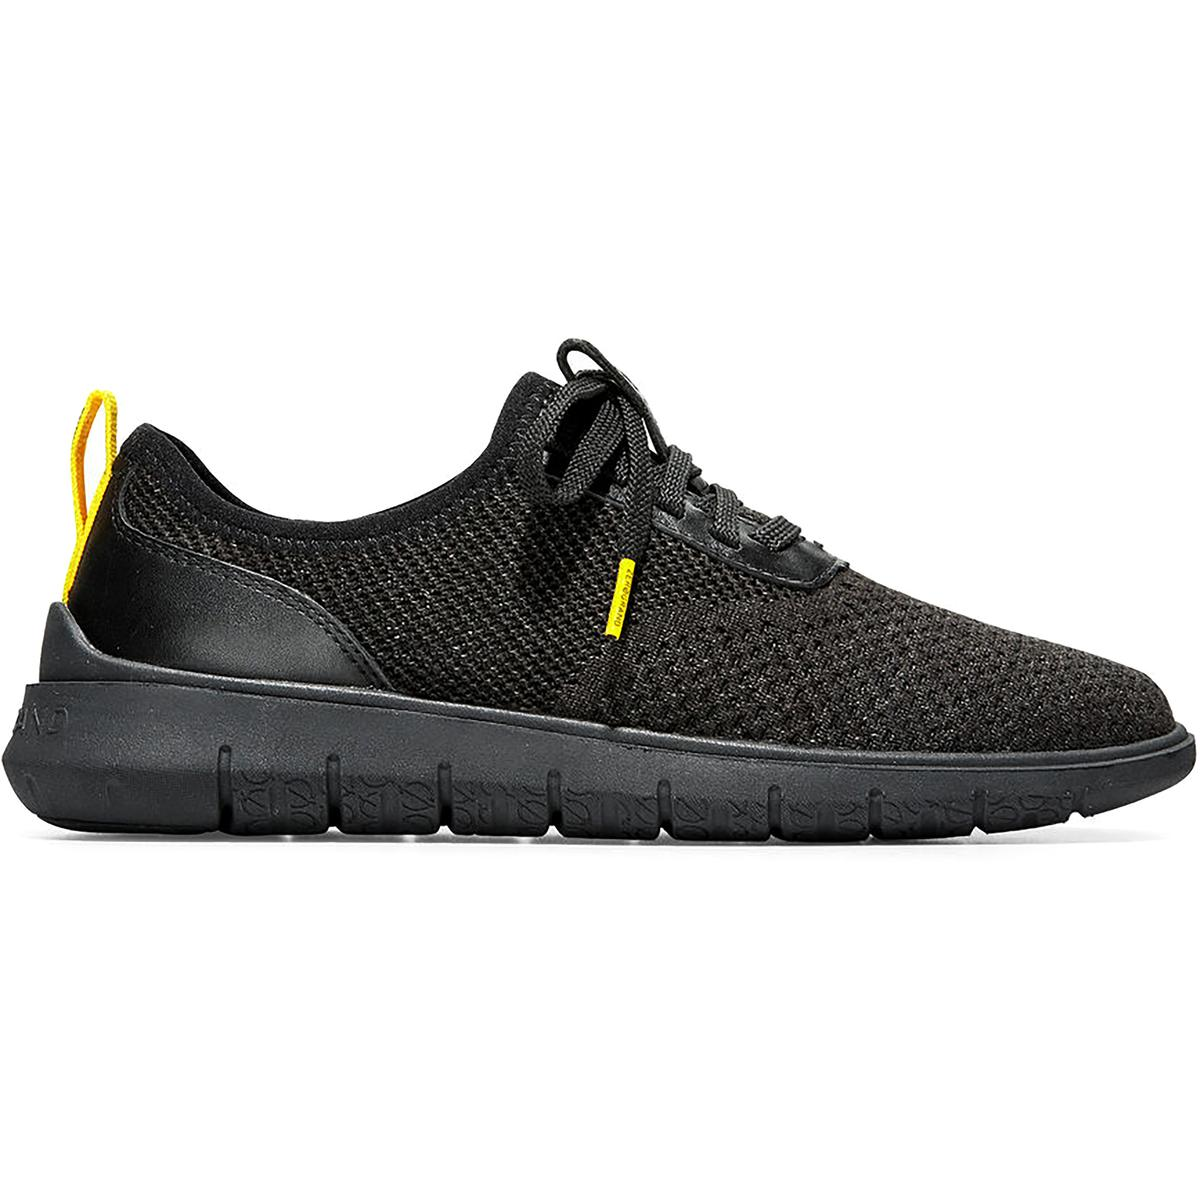 Cole Haan Womens Generation Zerogrand Stitchlite Knit Athletic Shoes BHFO 4687